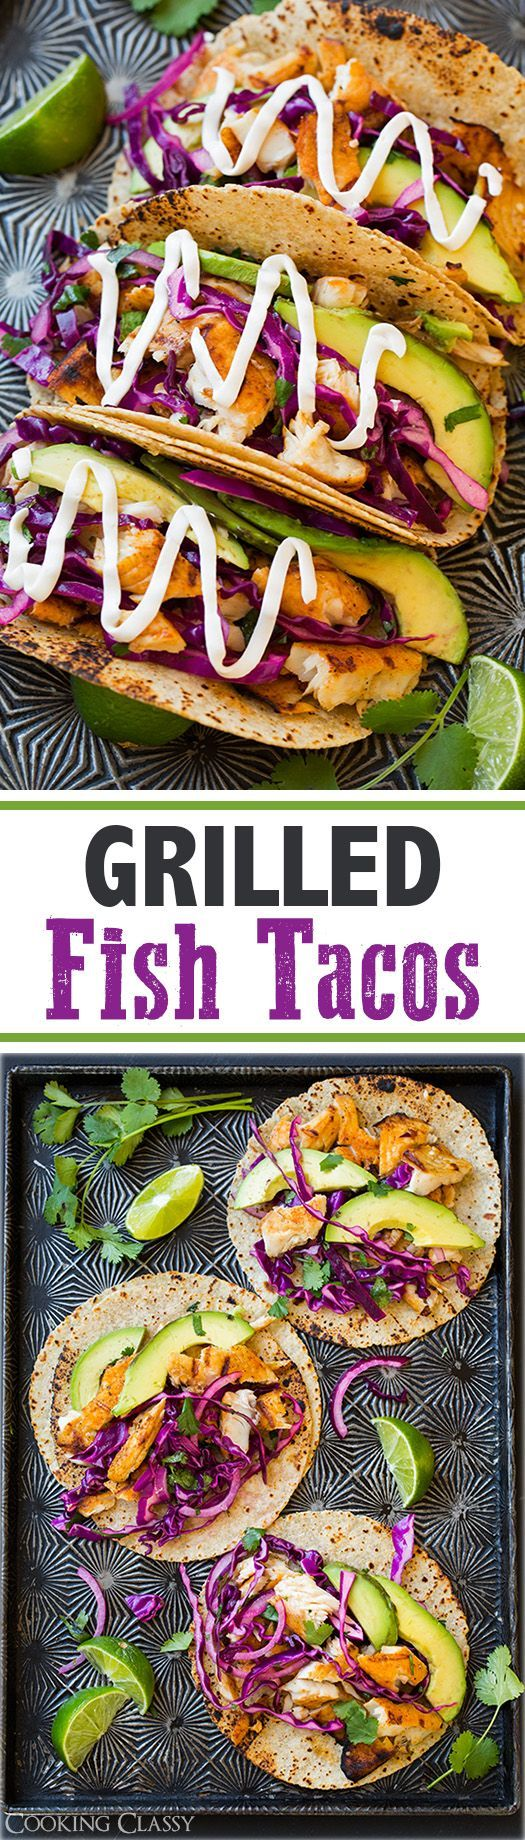 All Food and Drink: Grilled Fish Tacos with Lime Cabbage Slaw - Cookin...